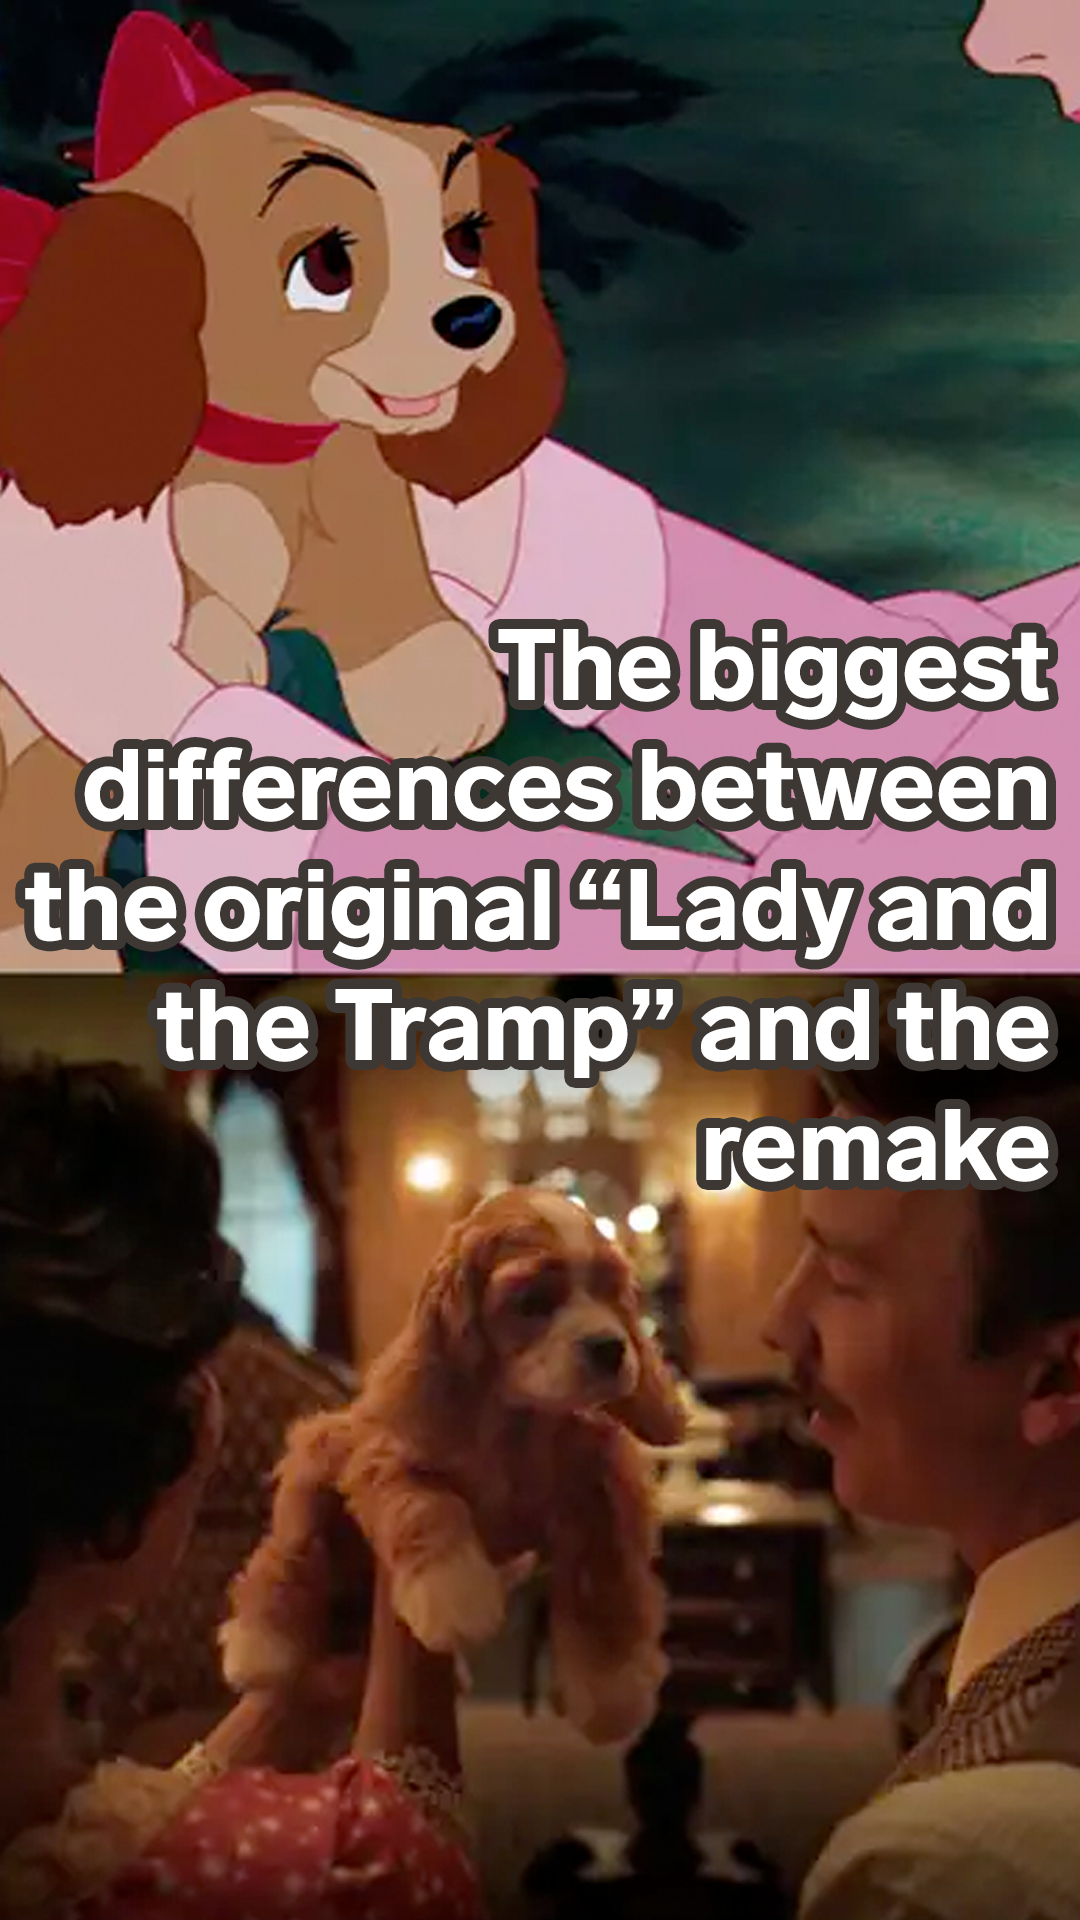 21 Of The Biggest Differences Between The Lady And The Tramp Remake And The Animated Movie In 2020 Lady And The Tramp Animated Movies Disney Kids